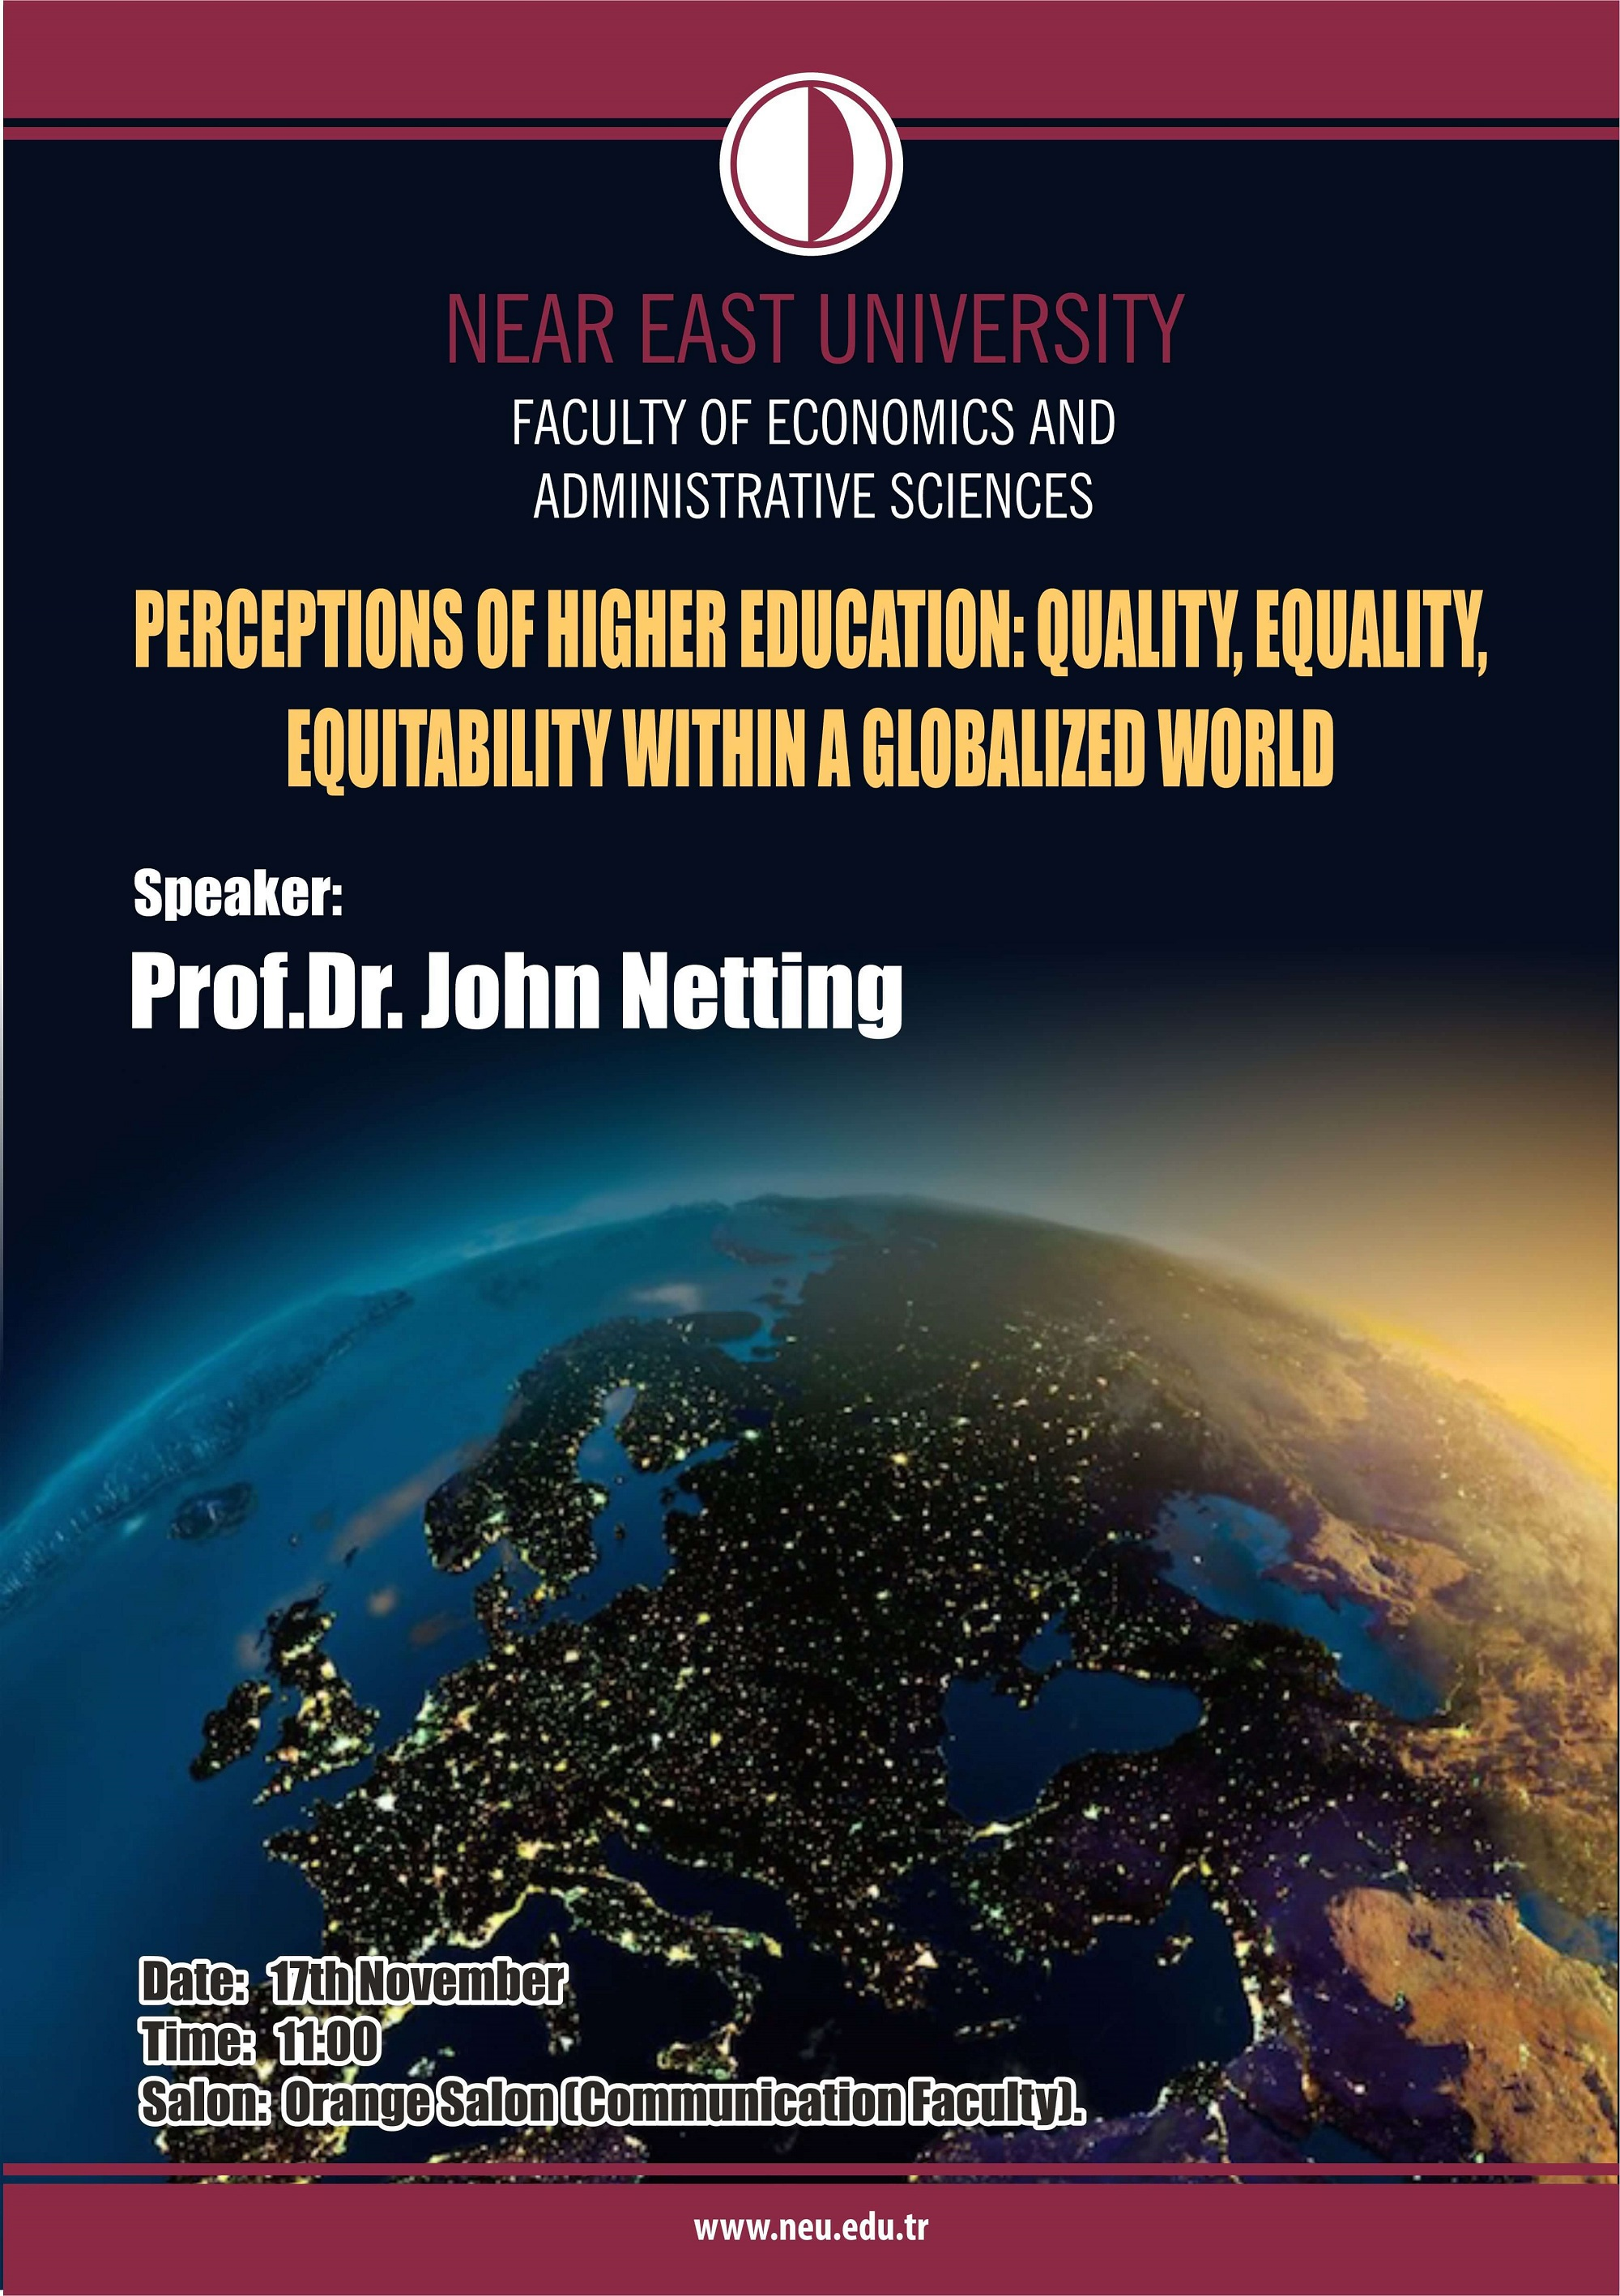 Perceptions of Higher Education: Quality, Equality, Equitability within a Globalized World